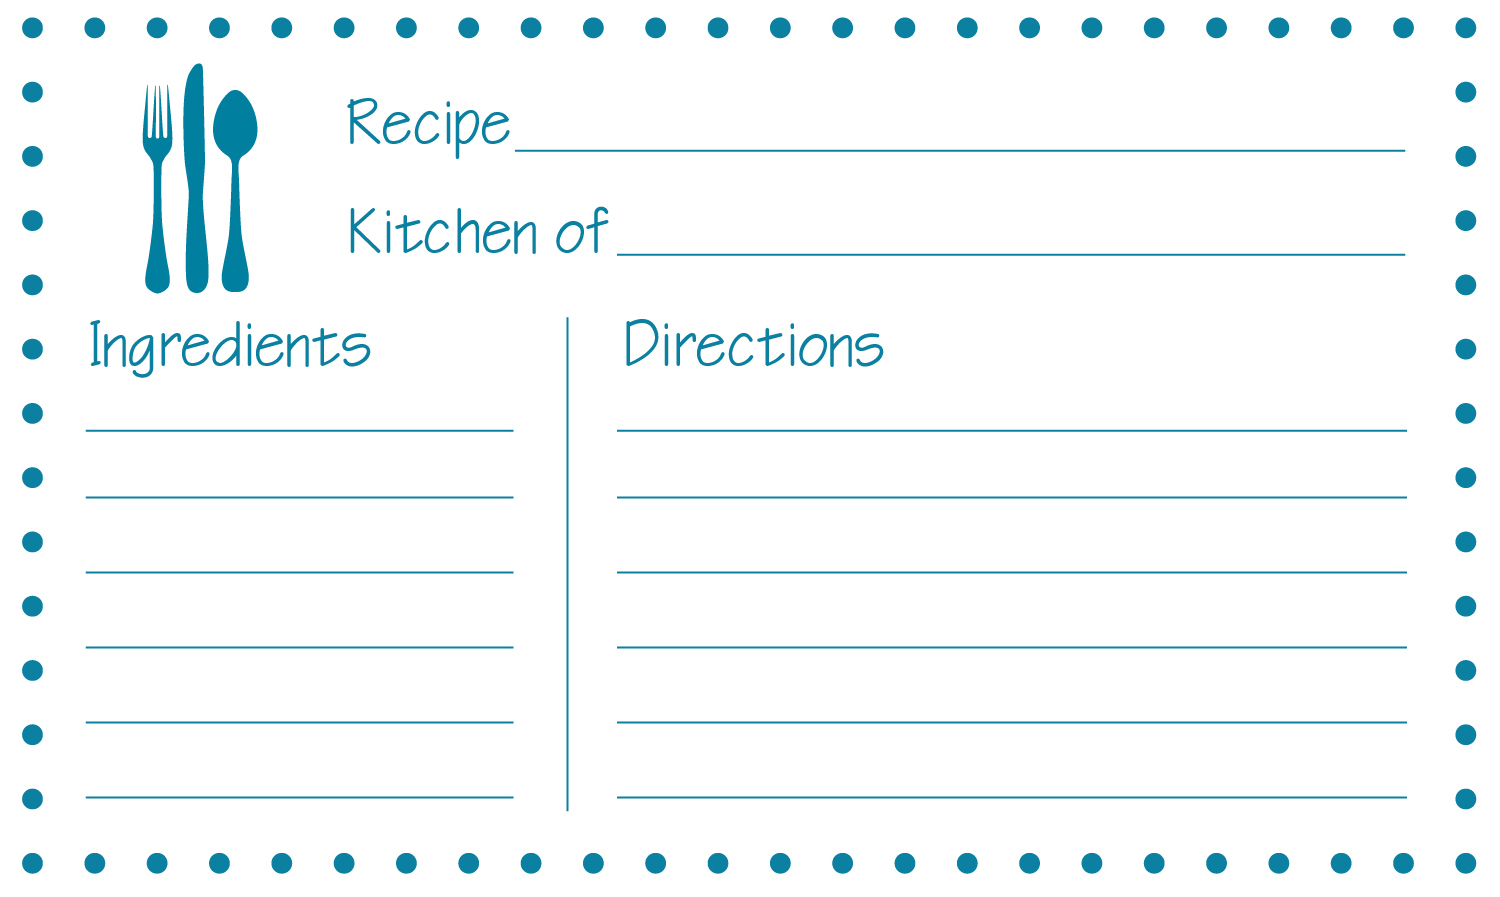 blank recipe card template word - Keni.candlecomfortzone.com